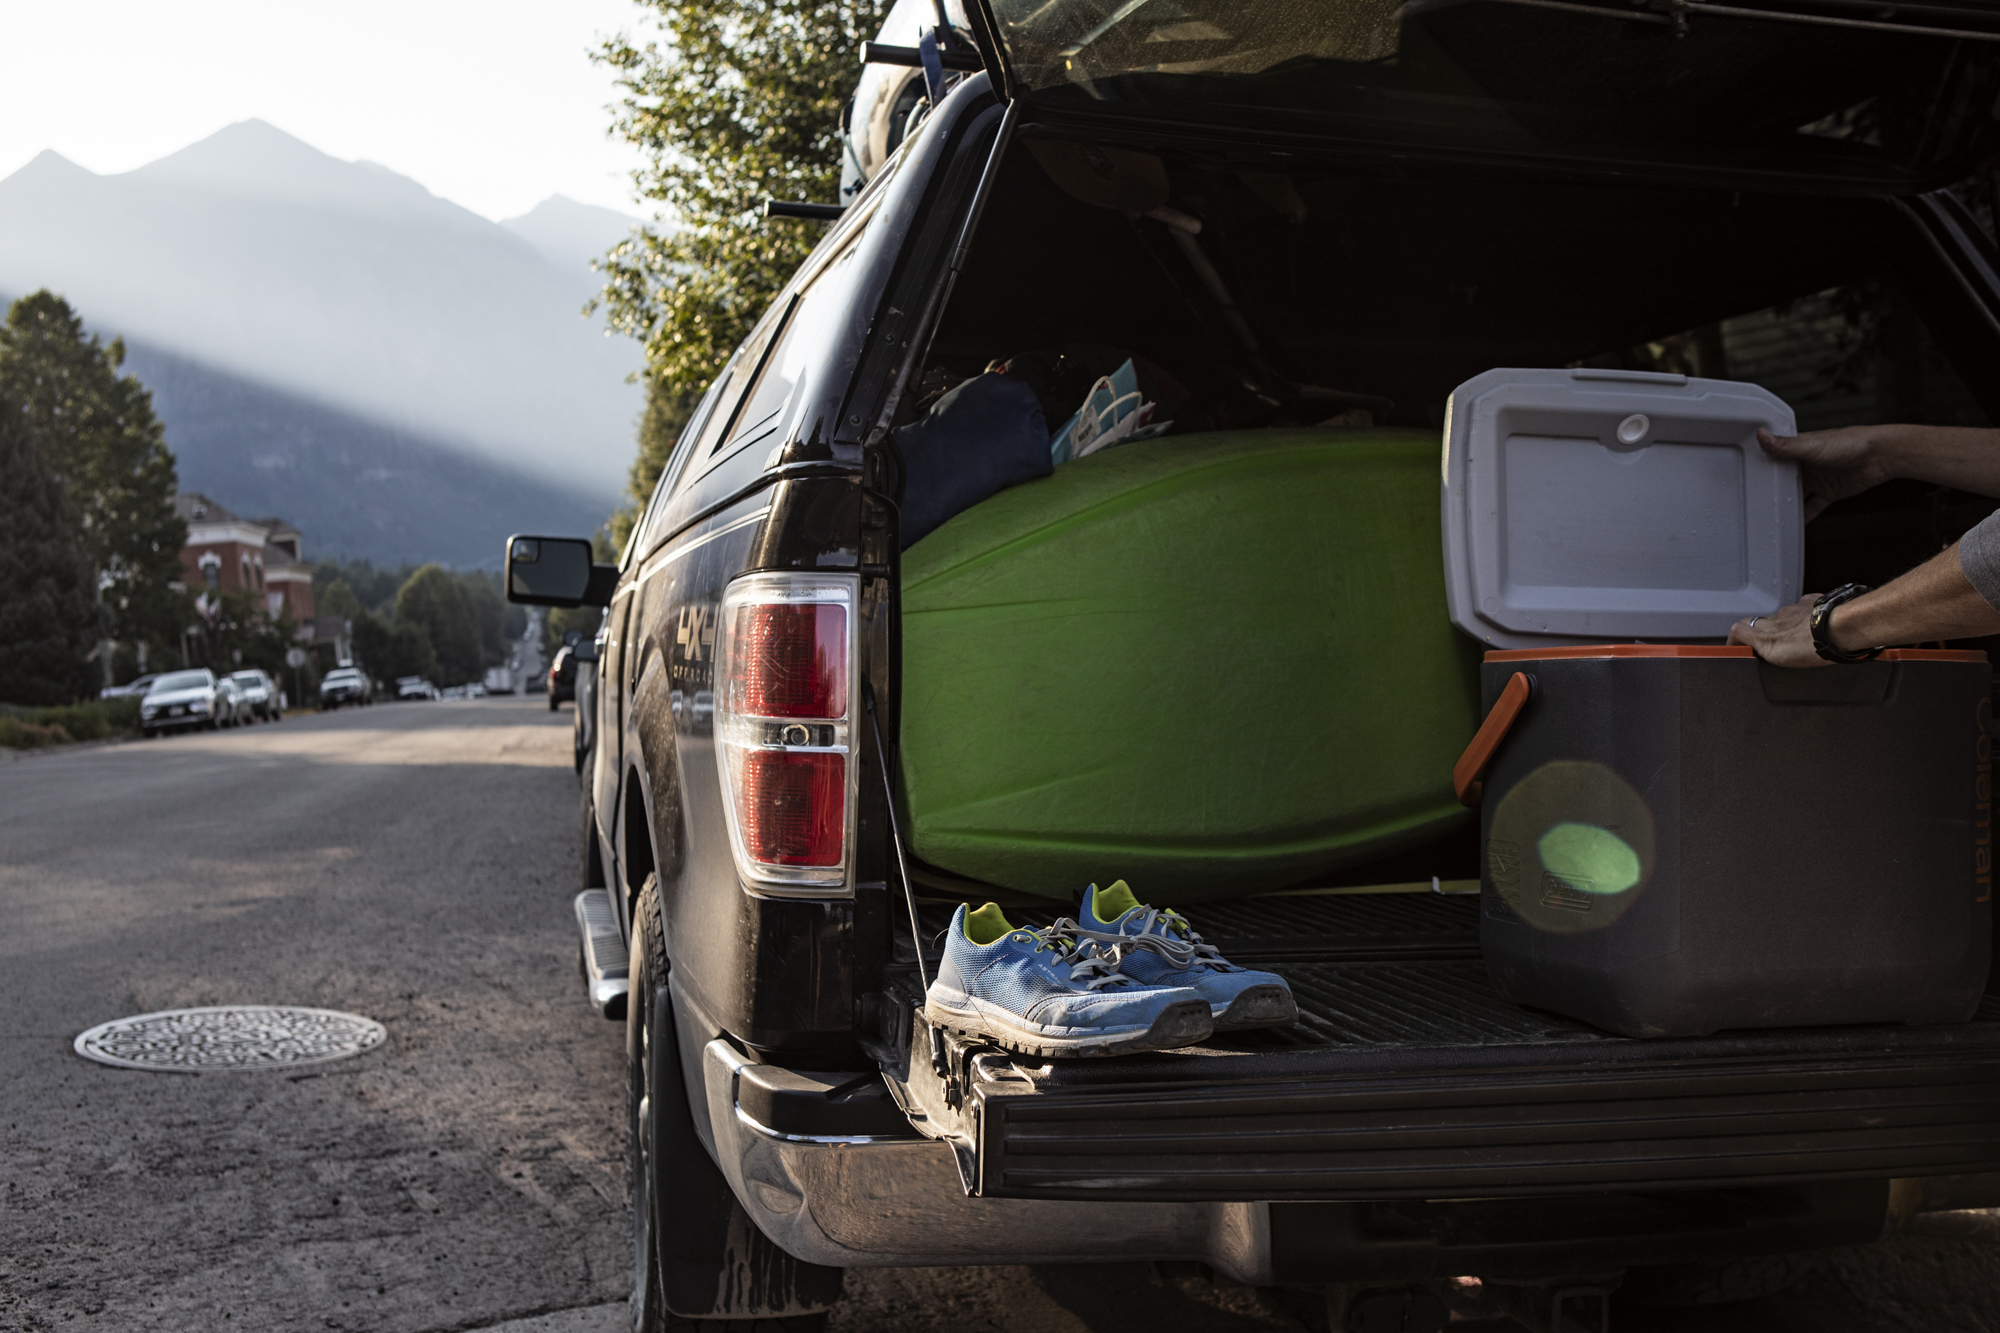 First light on the streets of Telluride, packing our gear once again.